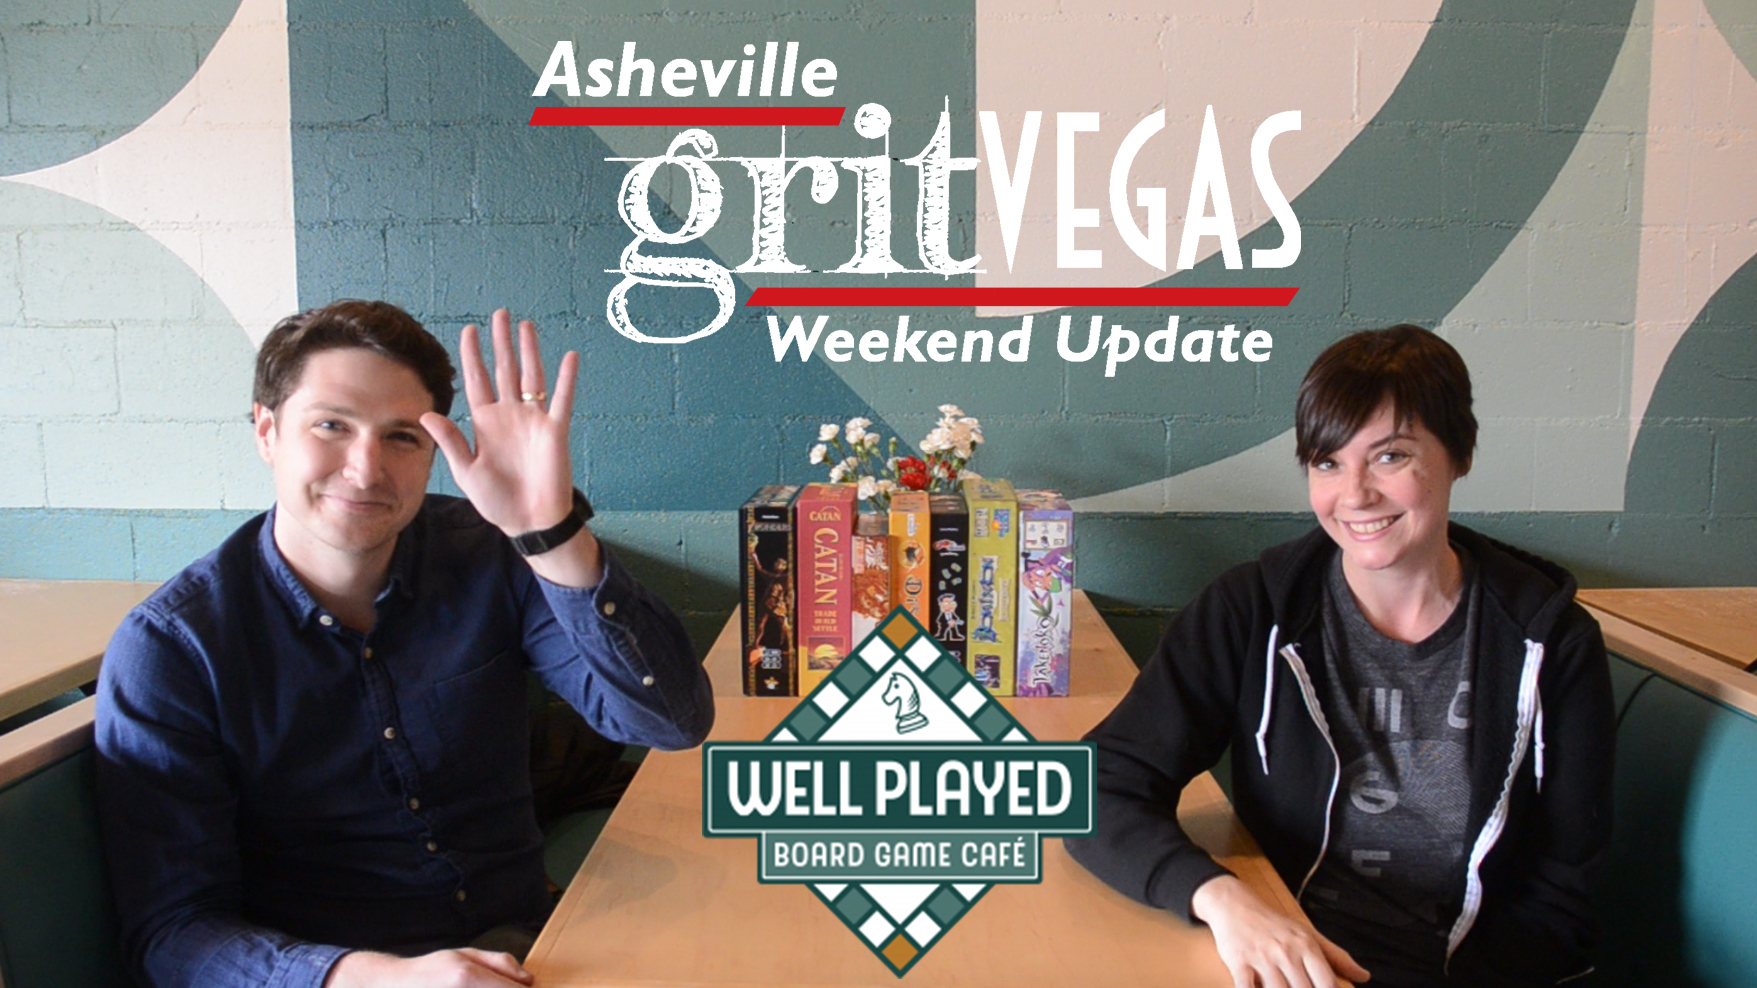 Well Played GritVegas Update